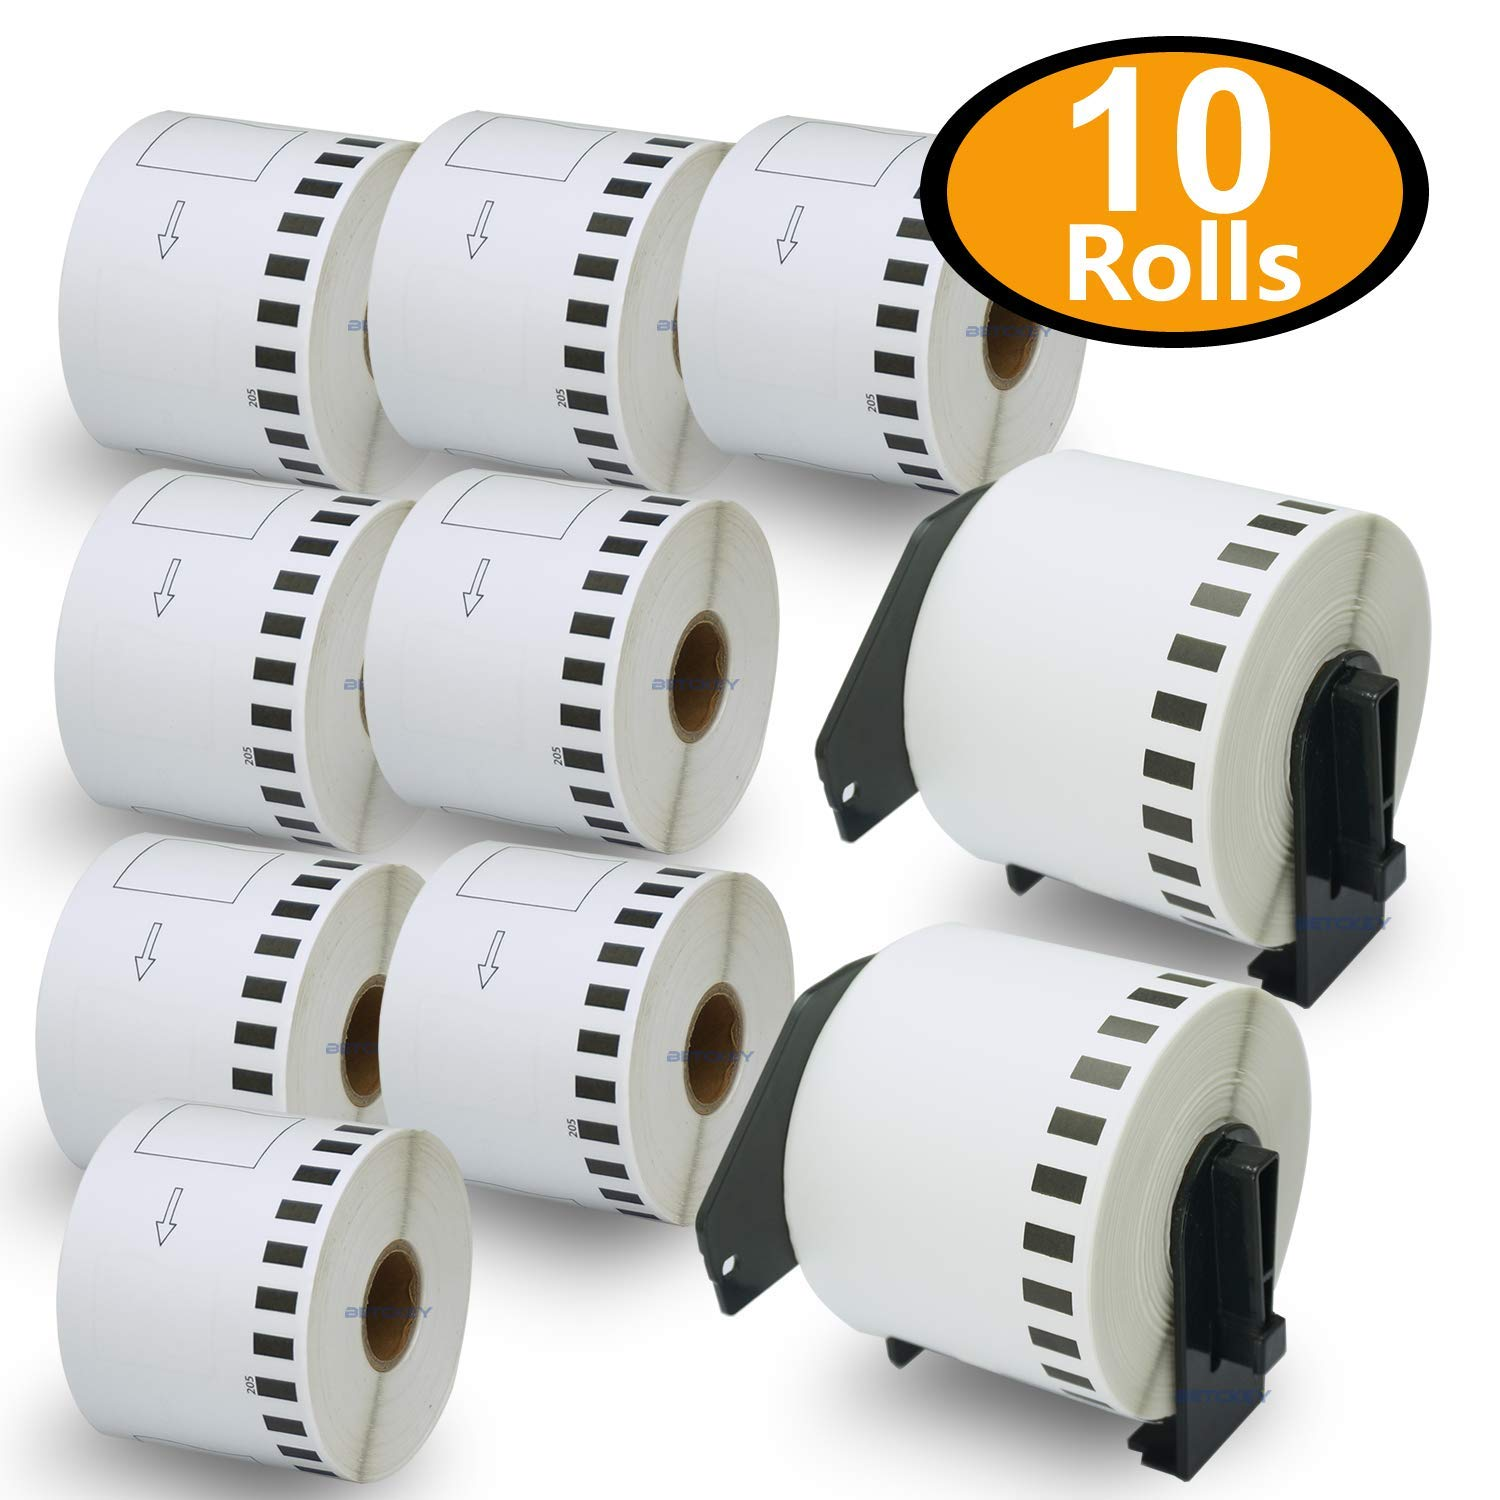 BETCKEY - 10 Rolls Compatible Brother DK-2205 62mm x 30.48m(2-3/7'' x 100') Continuous Length Paper Tape Labels With Two Refillable Cartridge Frame